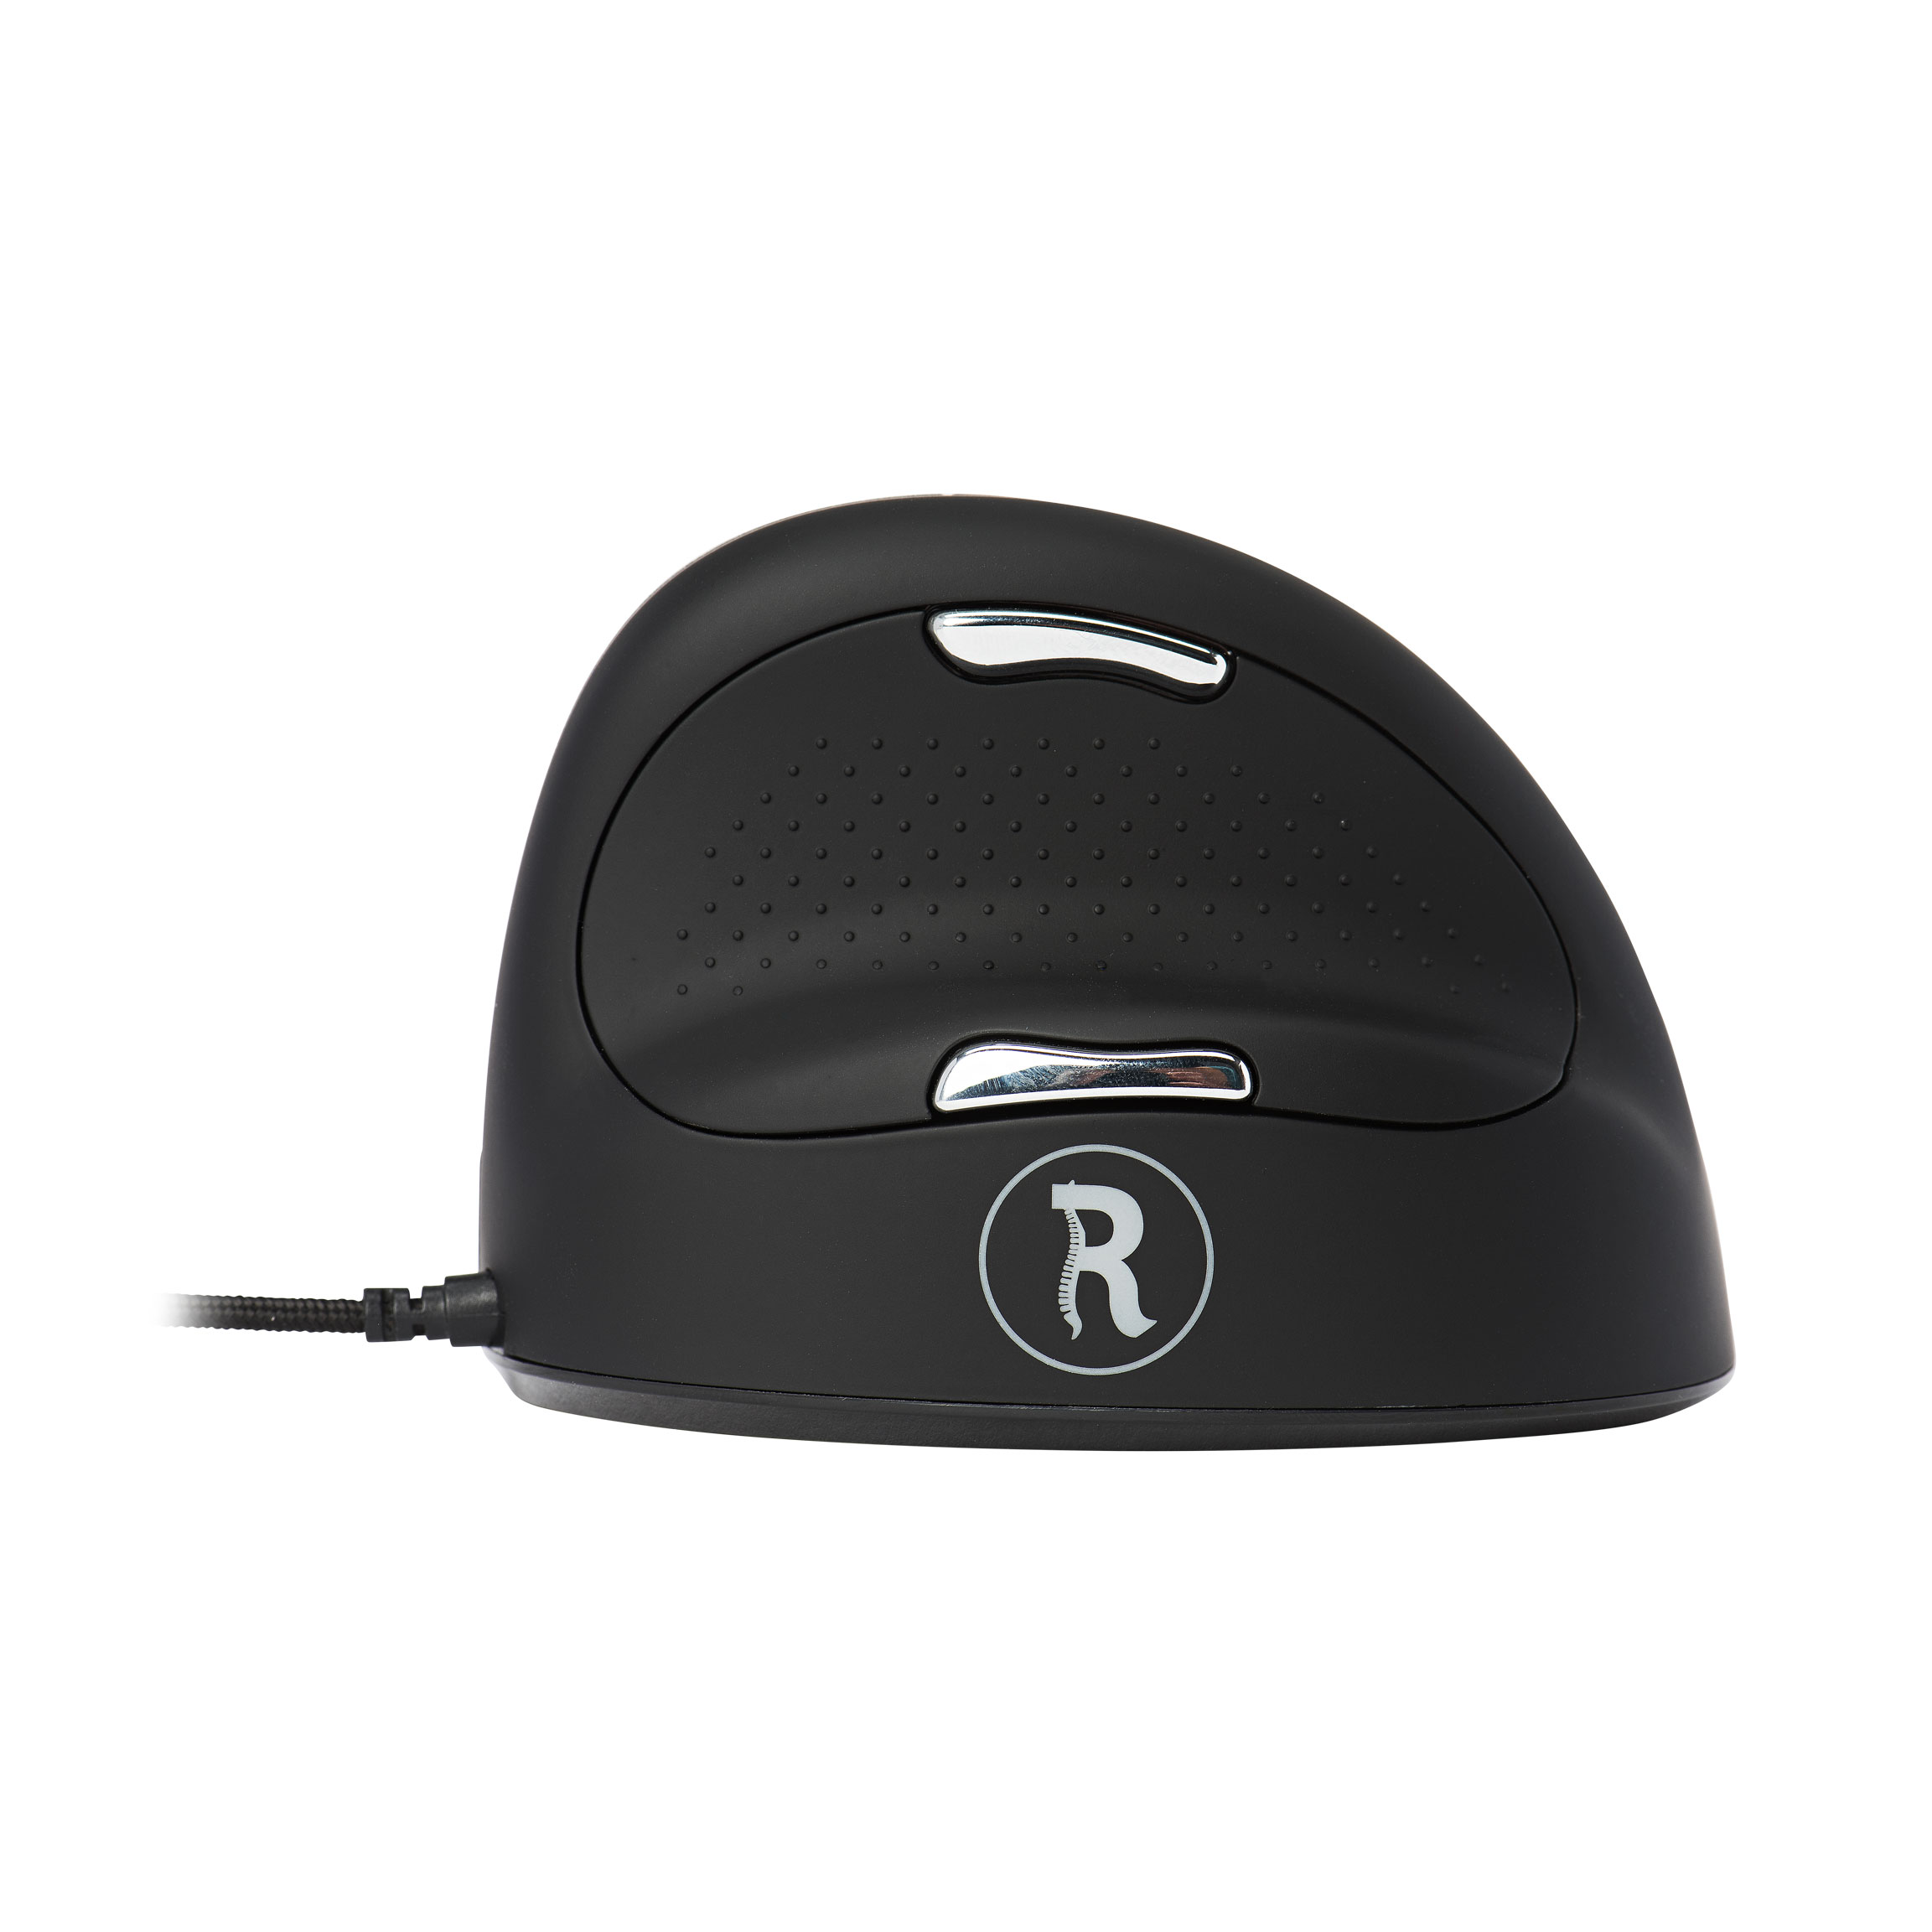 R-Go HE Break Mouse, Ergonomic mouse, Anti-RSI software, Medium (Hand Size 165-185mm), Right Handed, Wired - 8